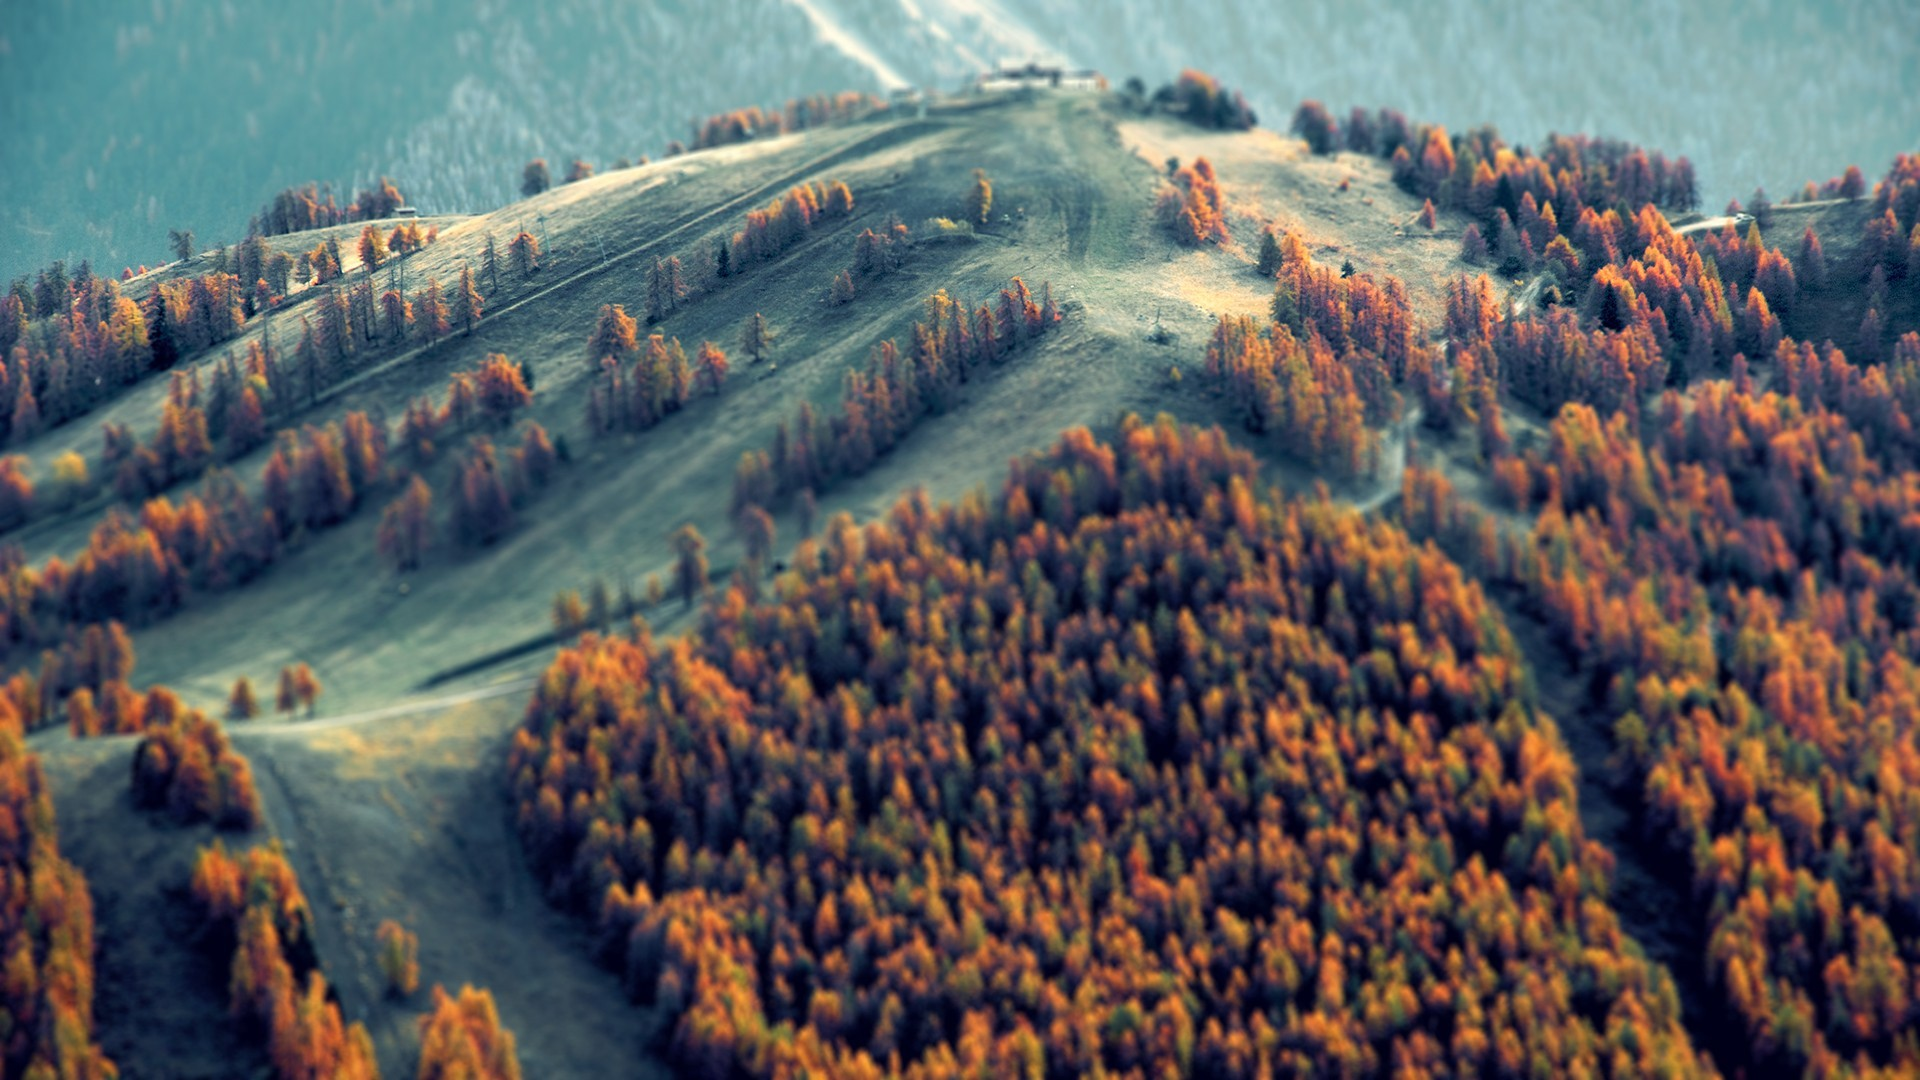 Fall Wallpaper Hd 1920x1080 29 Hd Tilt Shift Photography Wallpapers